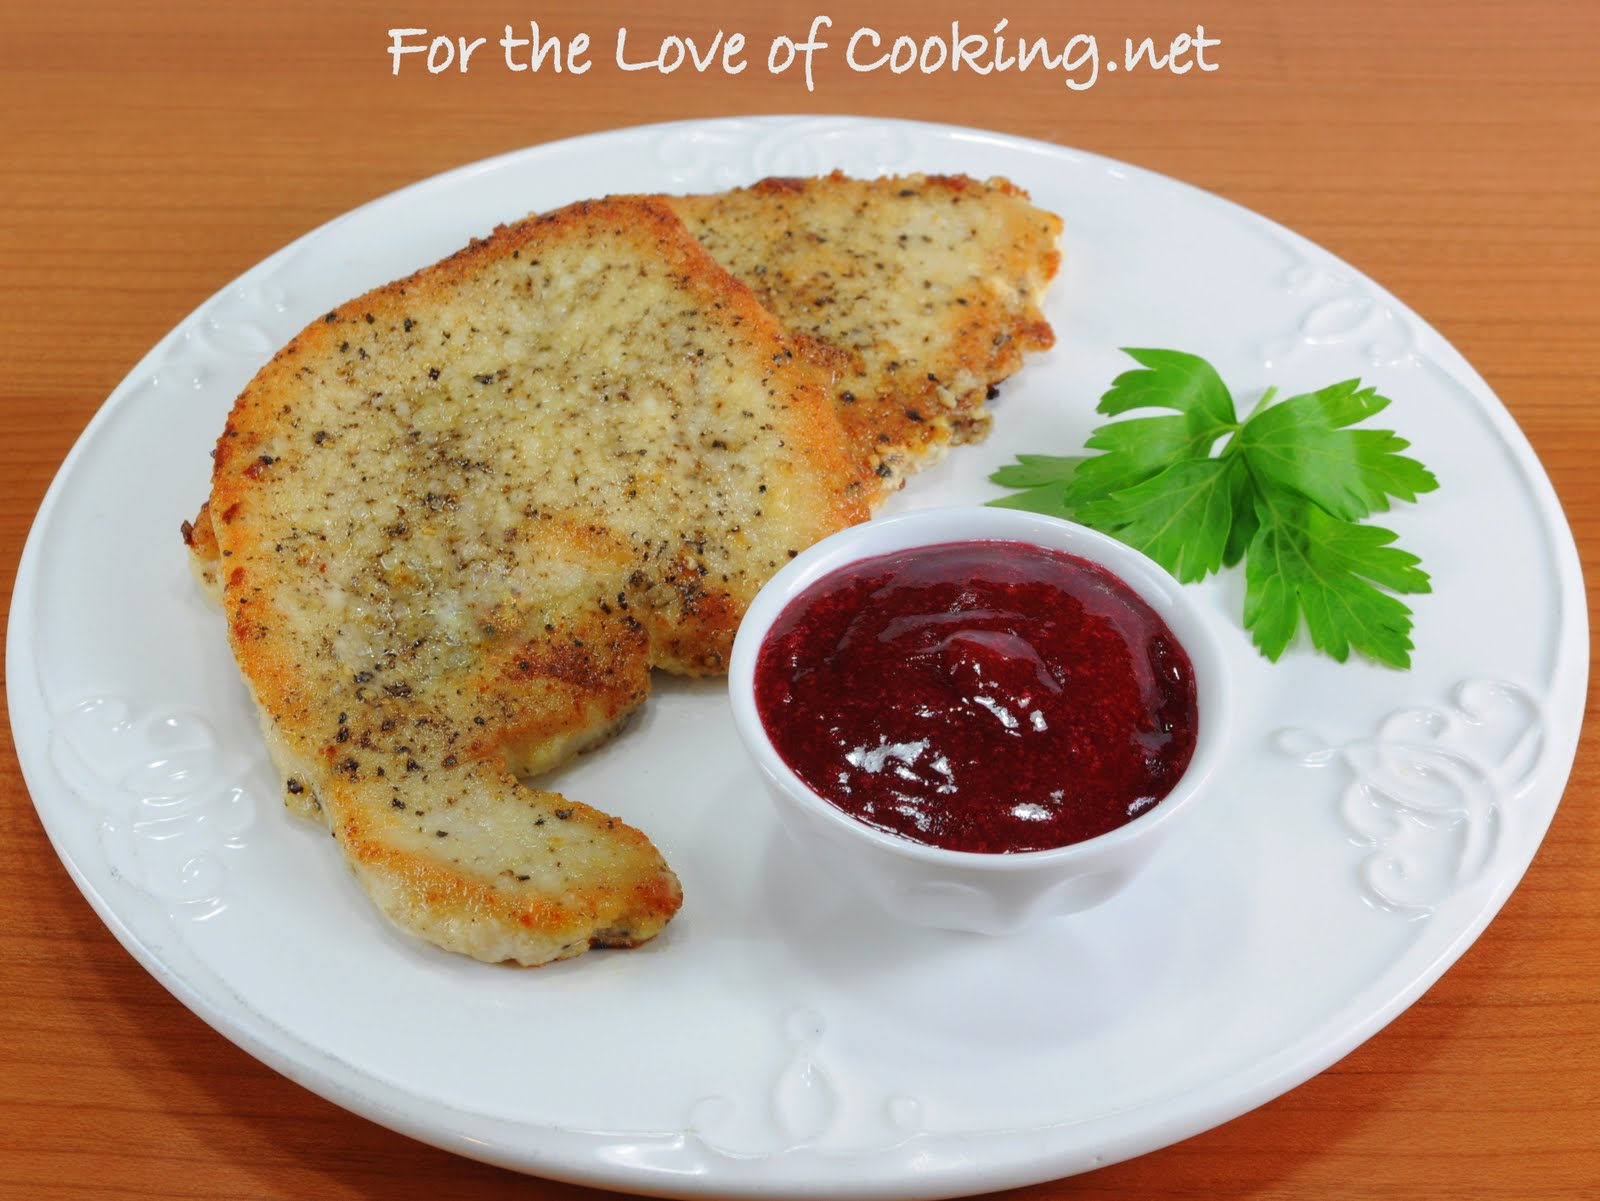 Turkey Cutlets with Cranberry Coulis | For the Love of Cooking